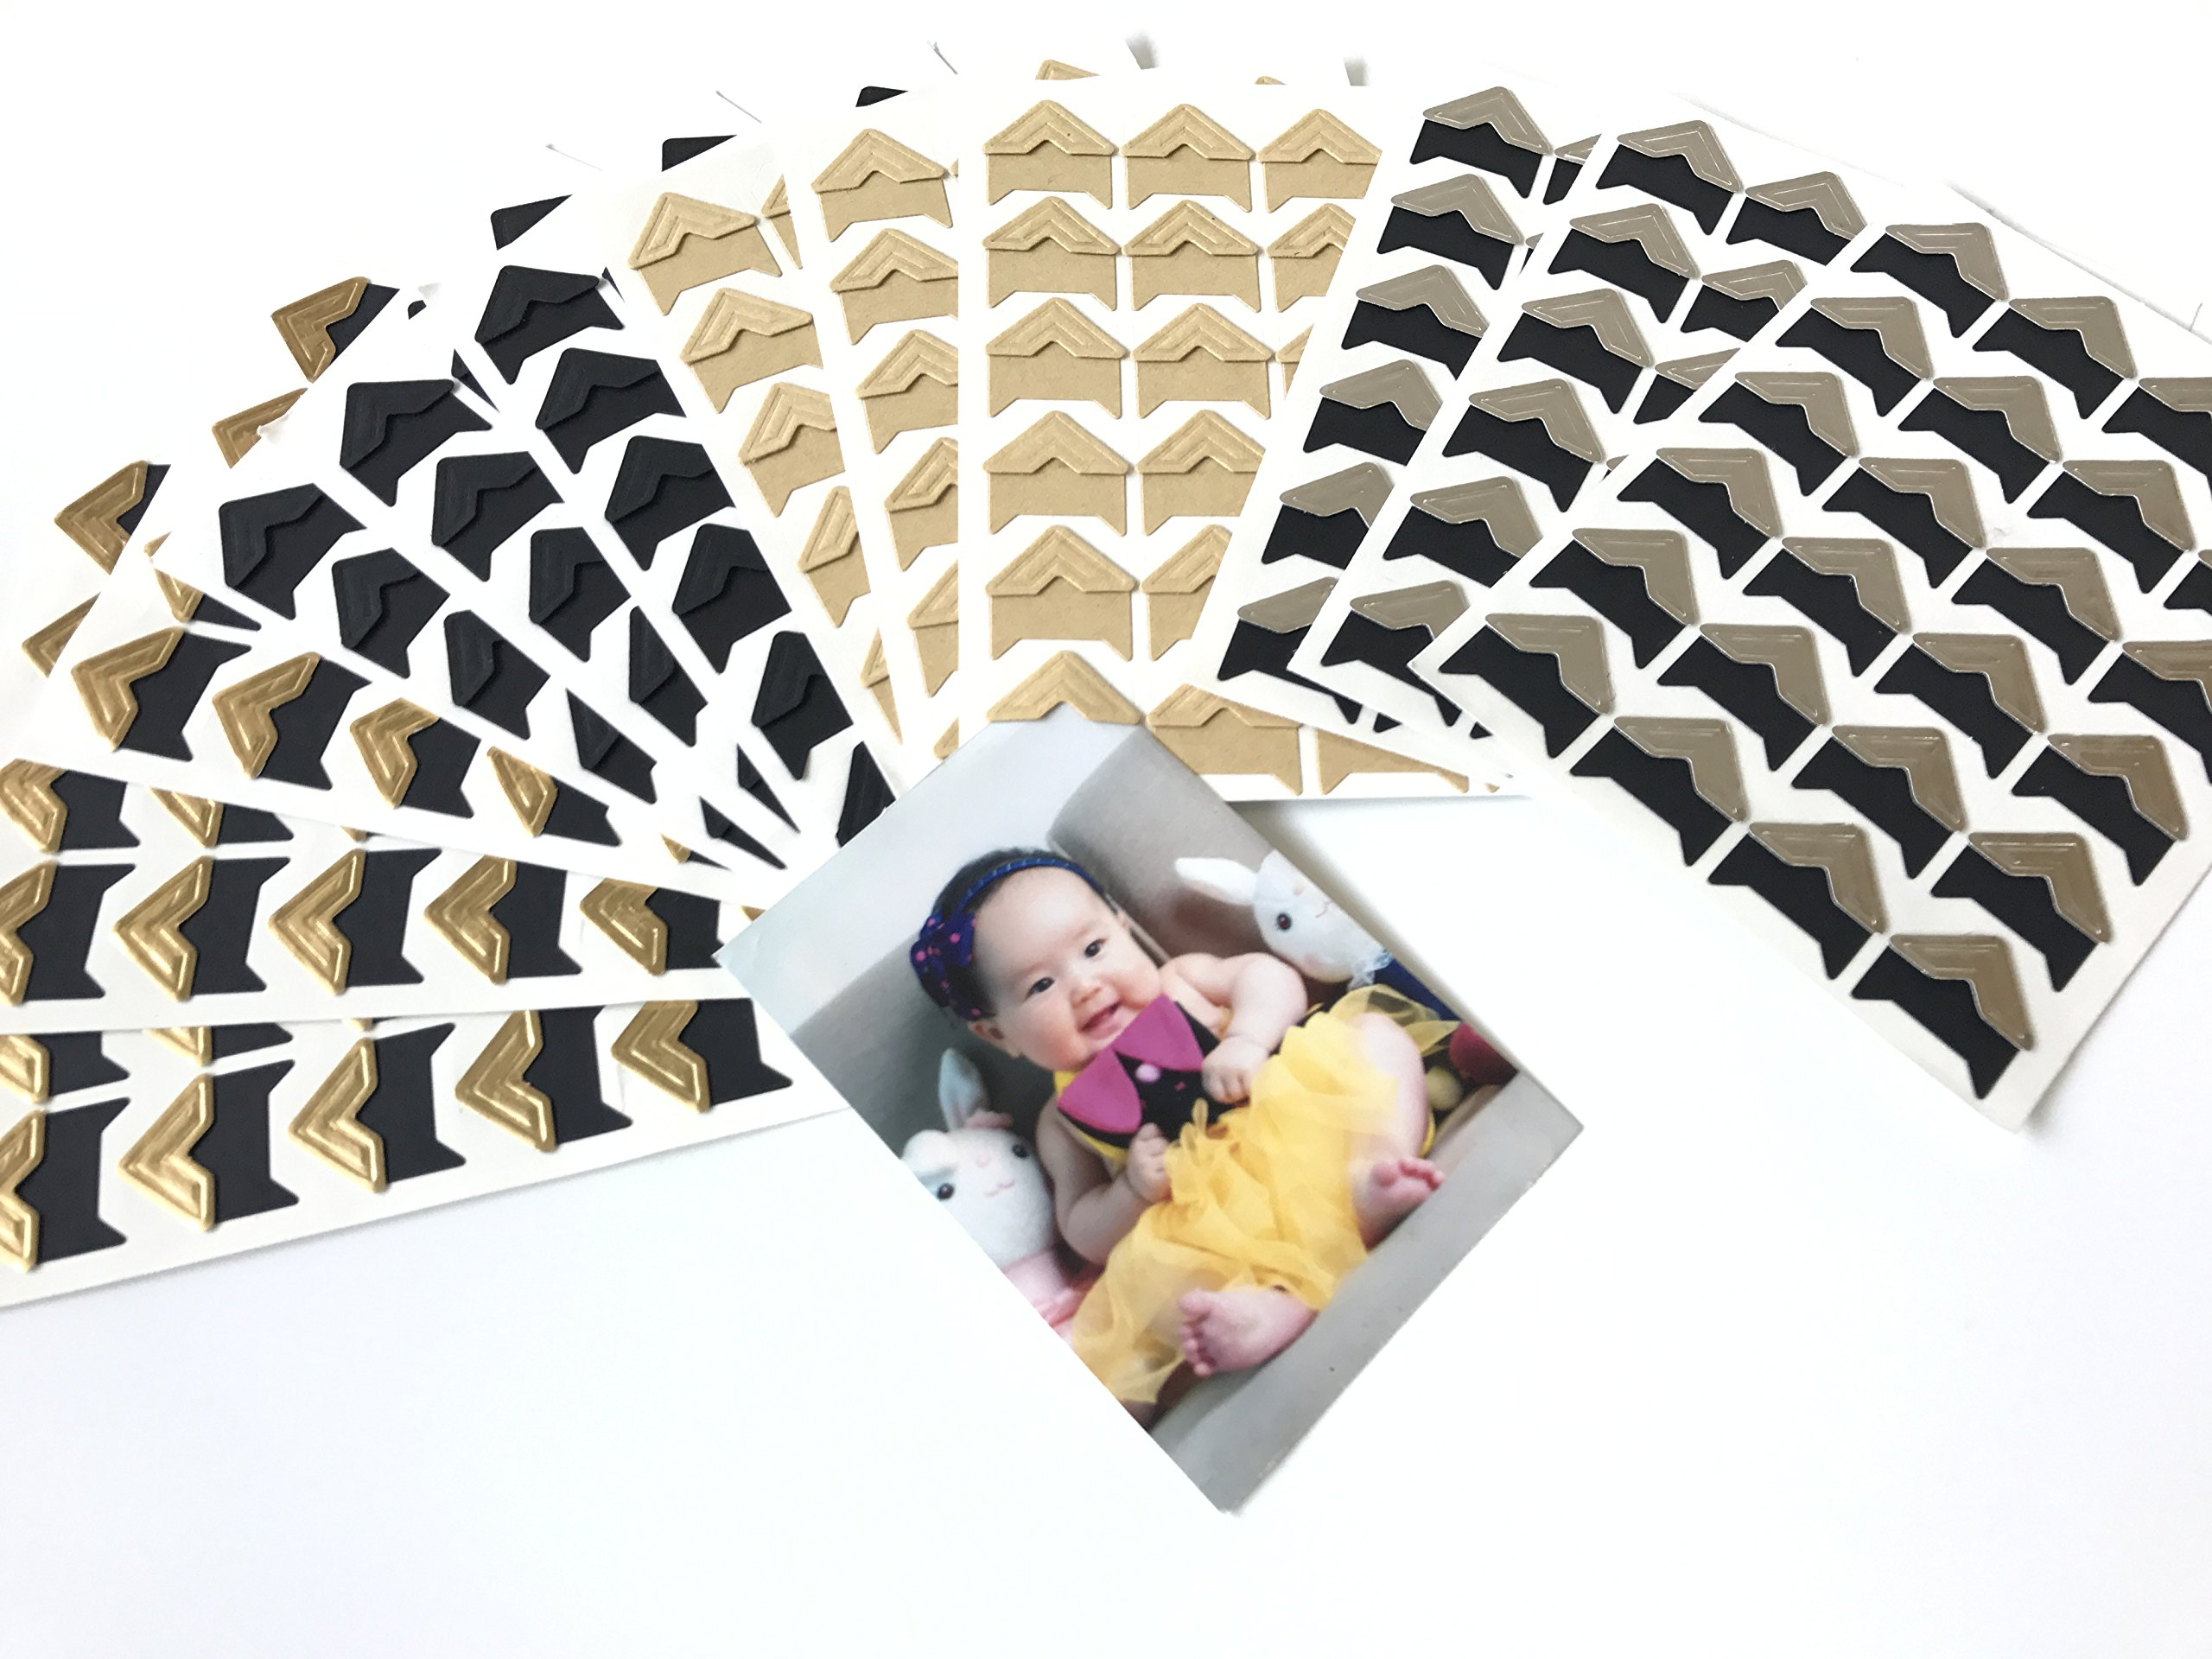 VEEPPO 288pcs 4Colors Photo Mounting Corners Self Adhesive Paper for Photo Book Scrapbook (Mixed 4 Colors)